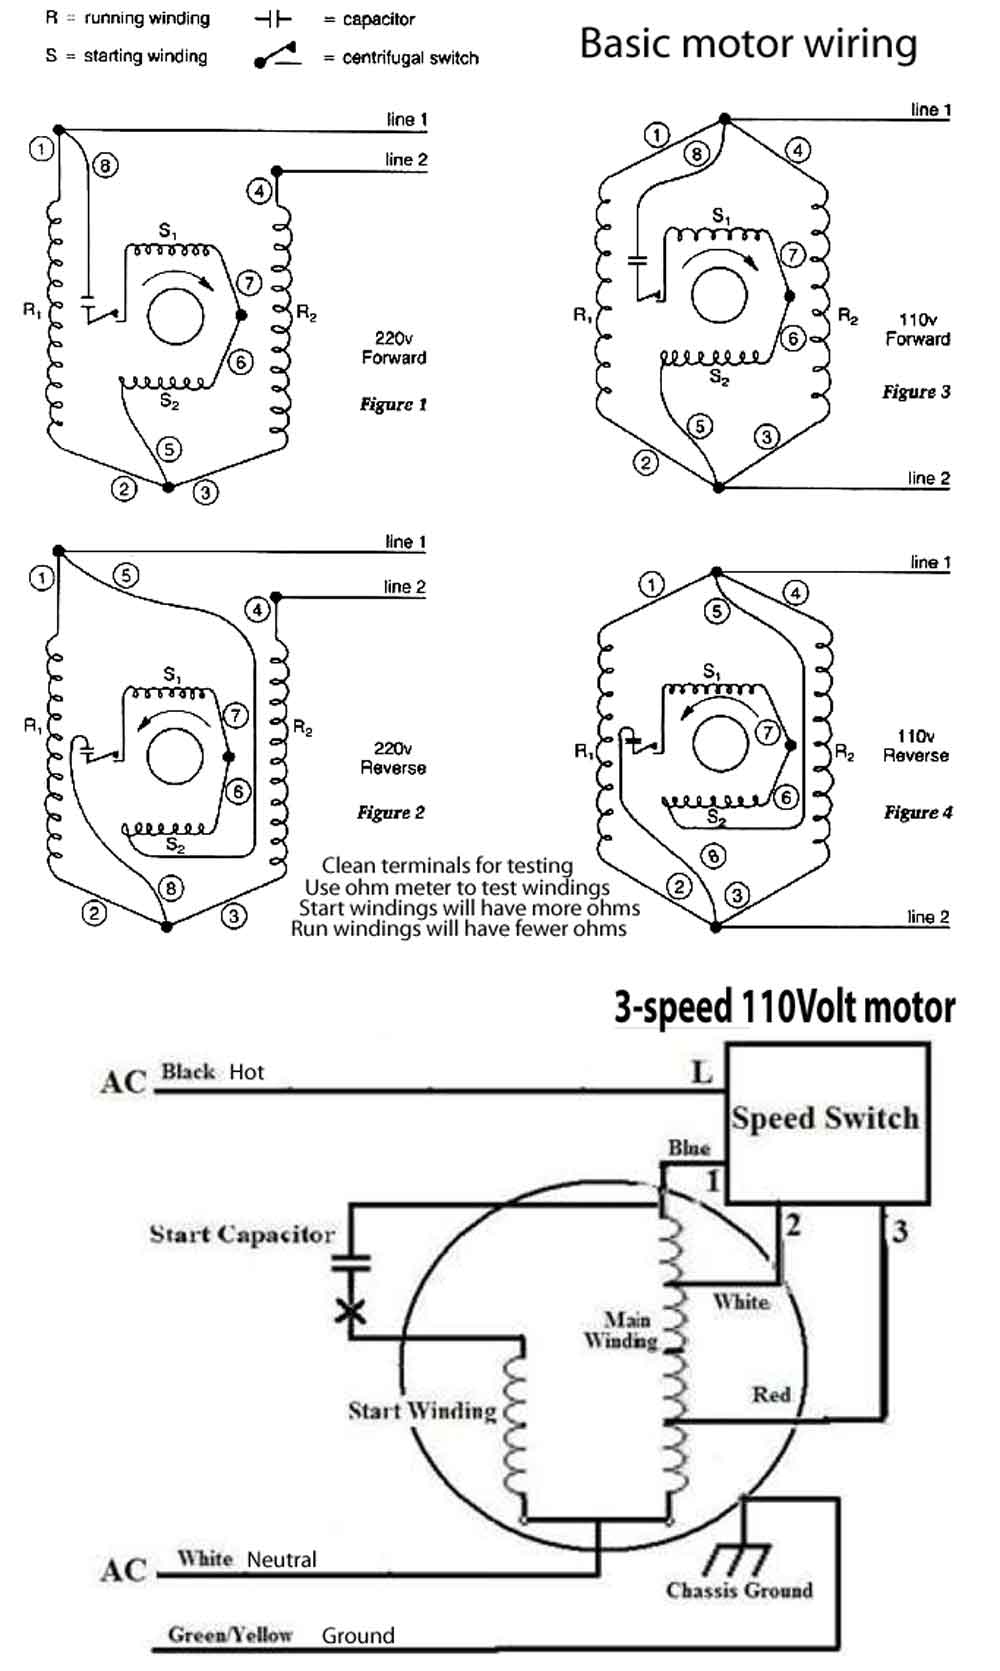 Motor wiring 500 how to wire 3 speed fan switch Dayton Thermostats Manuals at n-0.co